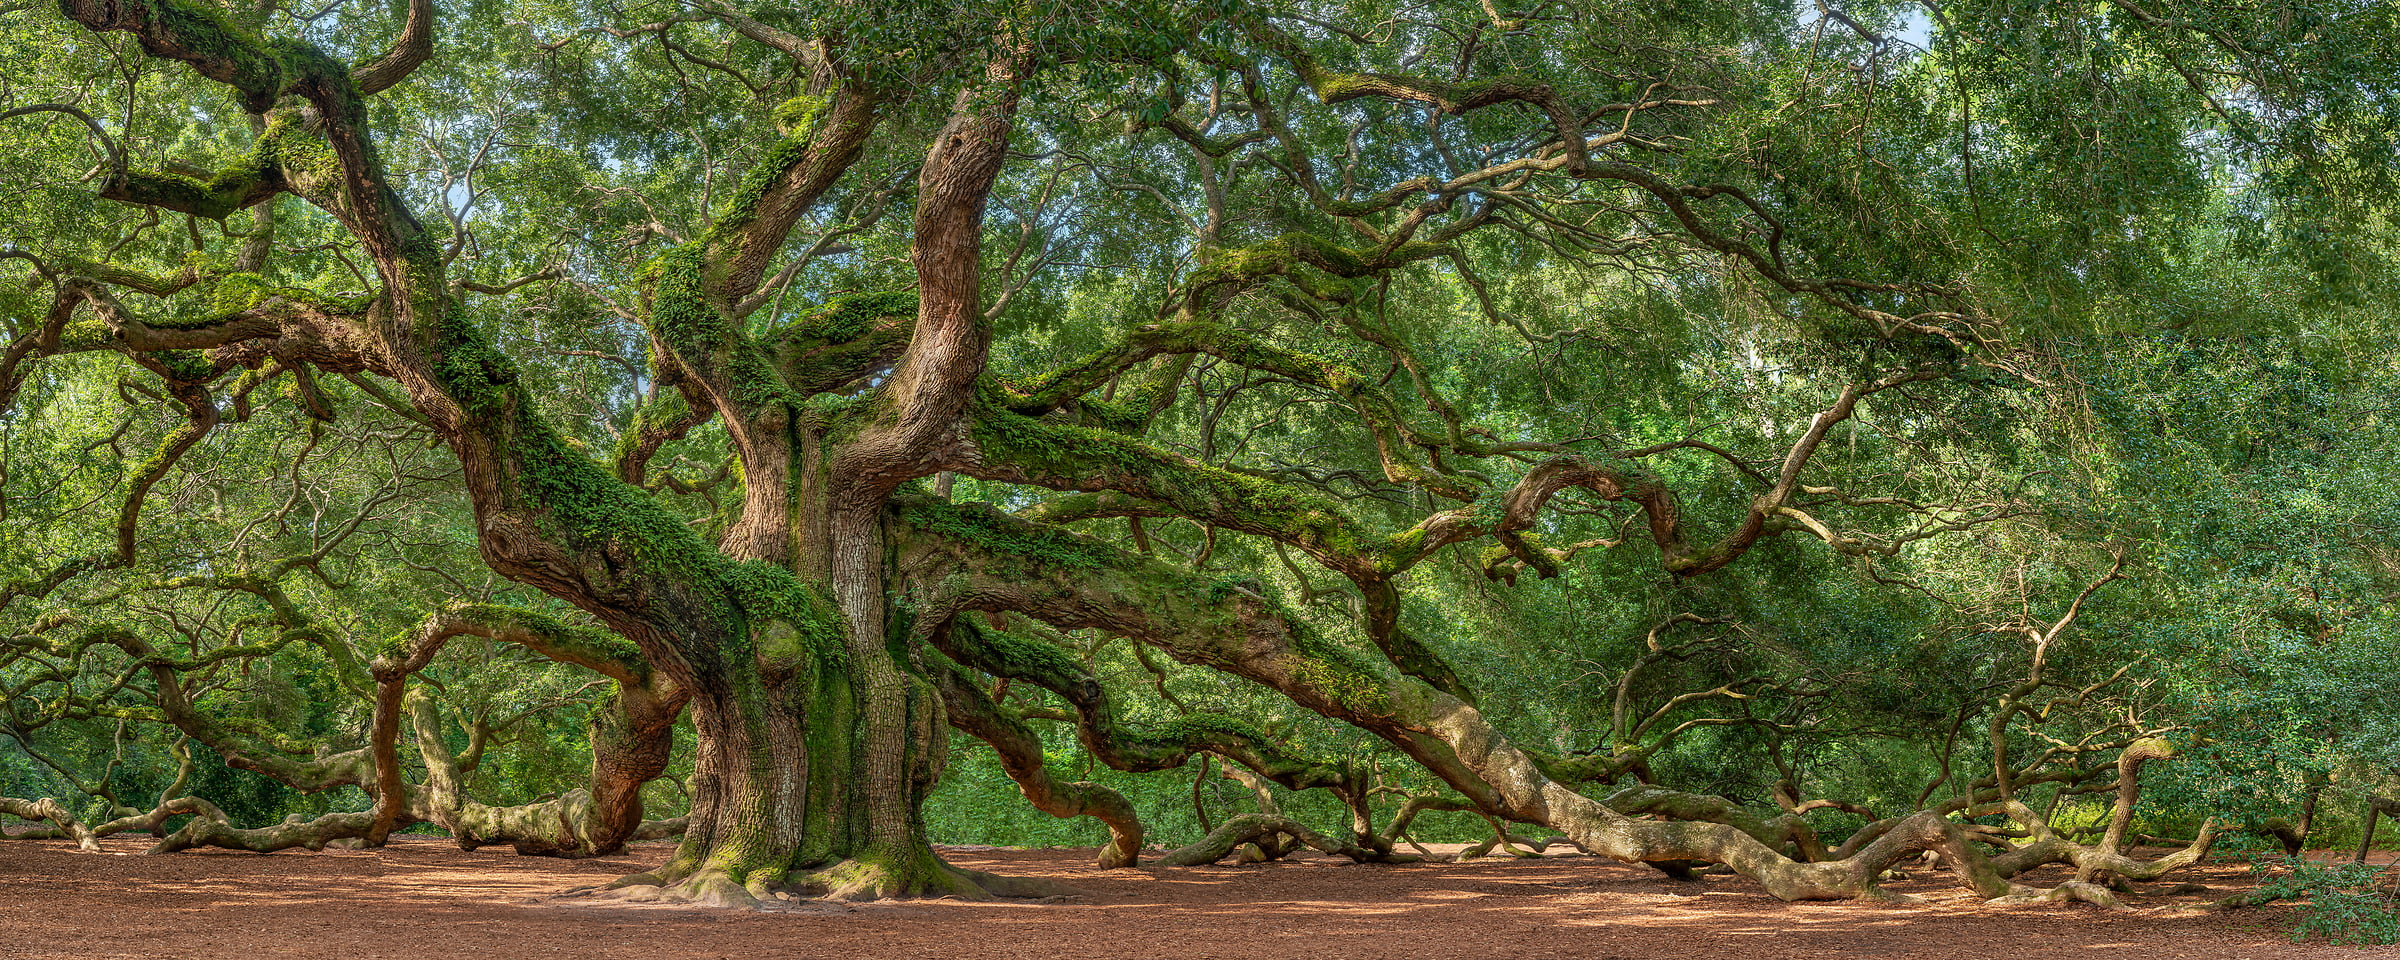 182 megapixels! A very high resolution, large-format VAST photo of a very big Oak tree; nature photograph created by Tim Lo Monaco in Angel Oak Park, Johns Island, South Carolina, USA